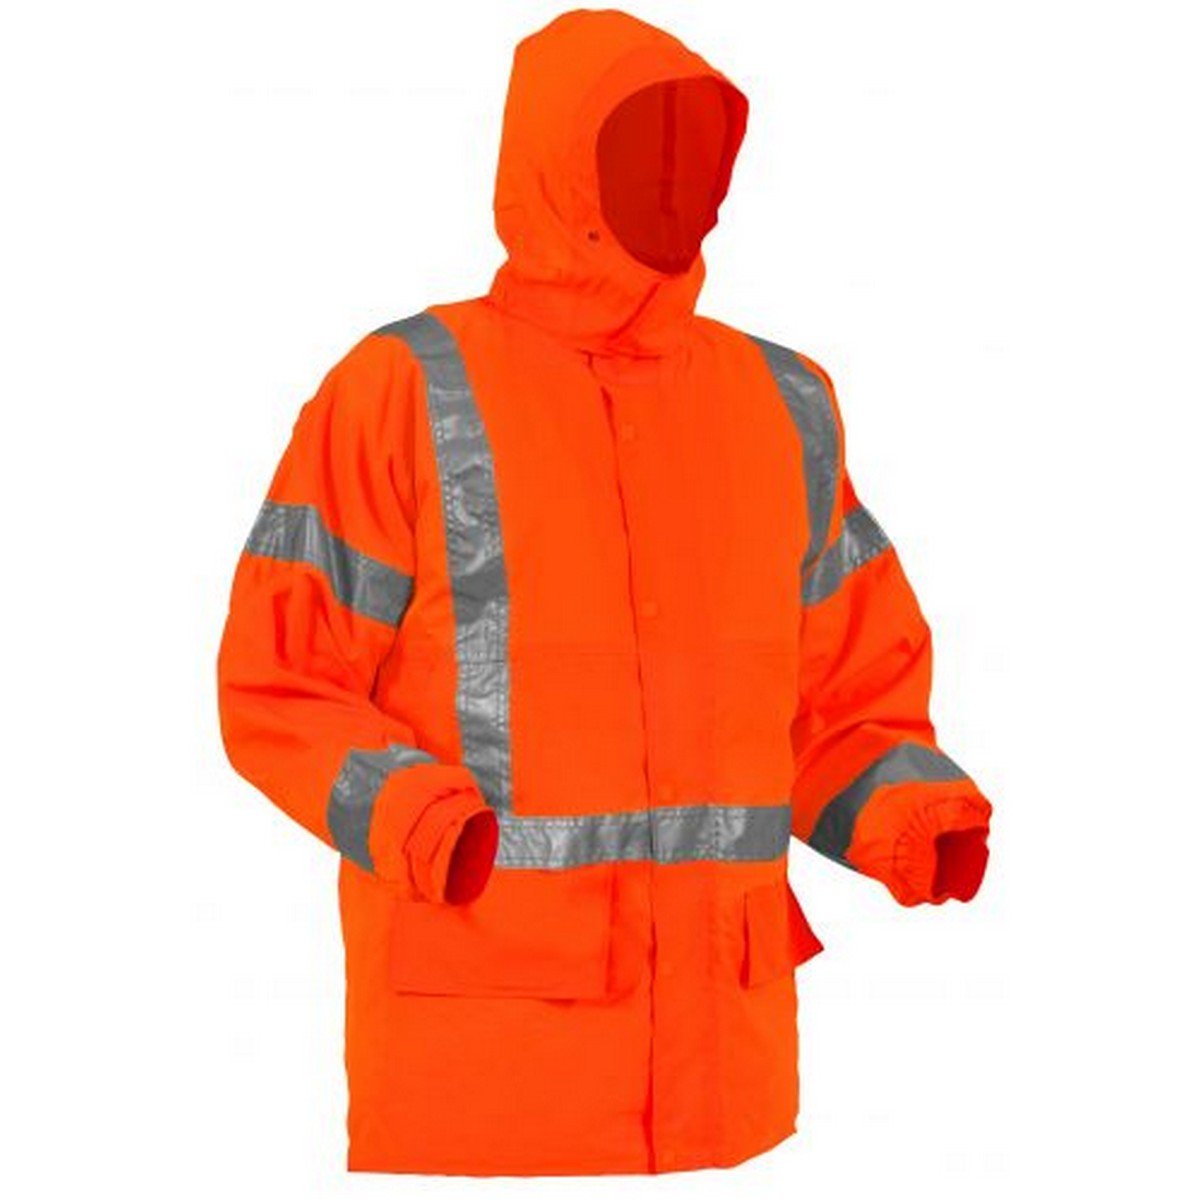 Image of Bison Stamina Jacket Orange